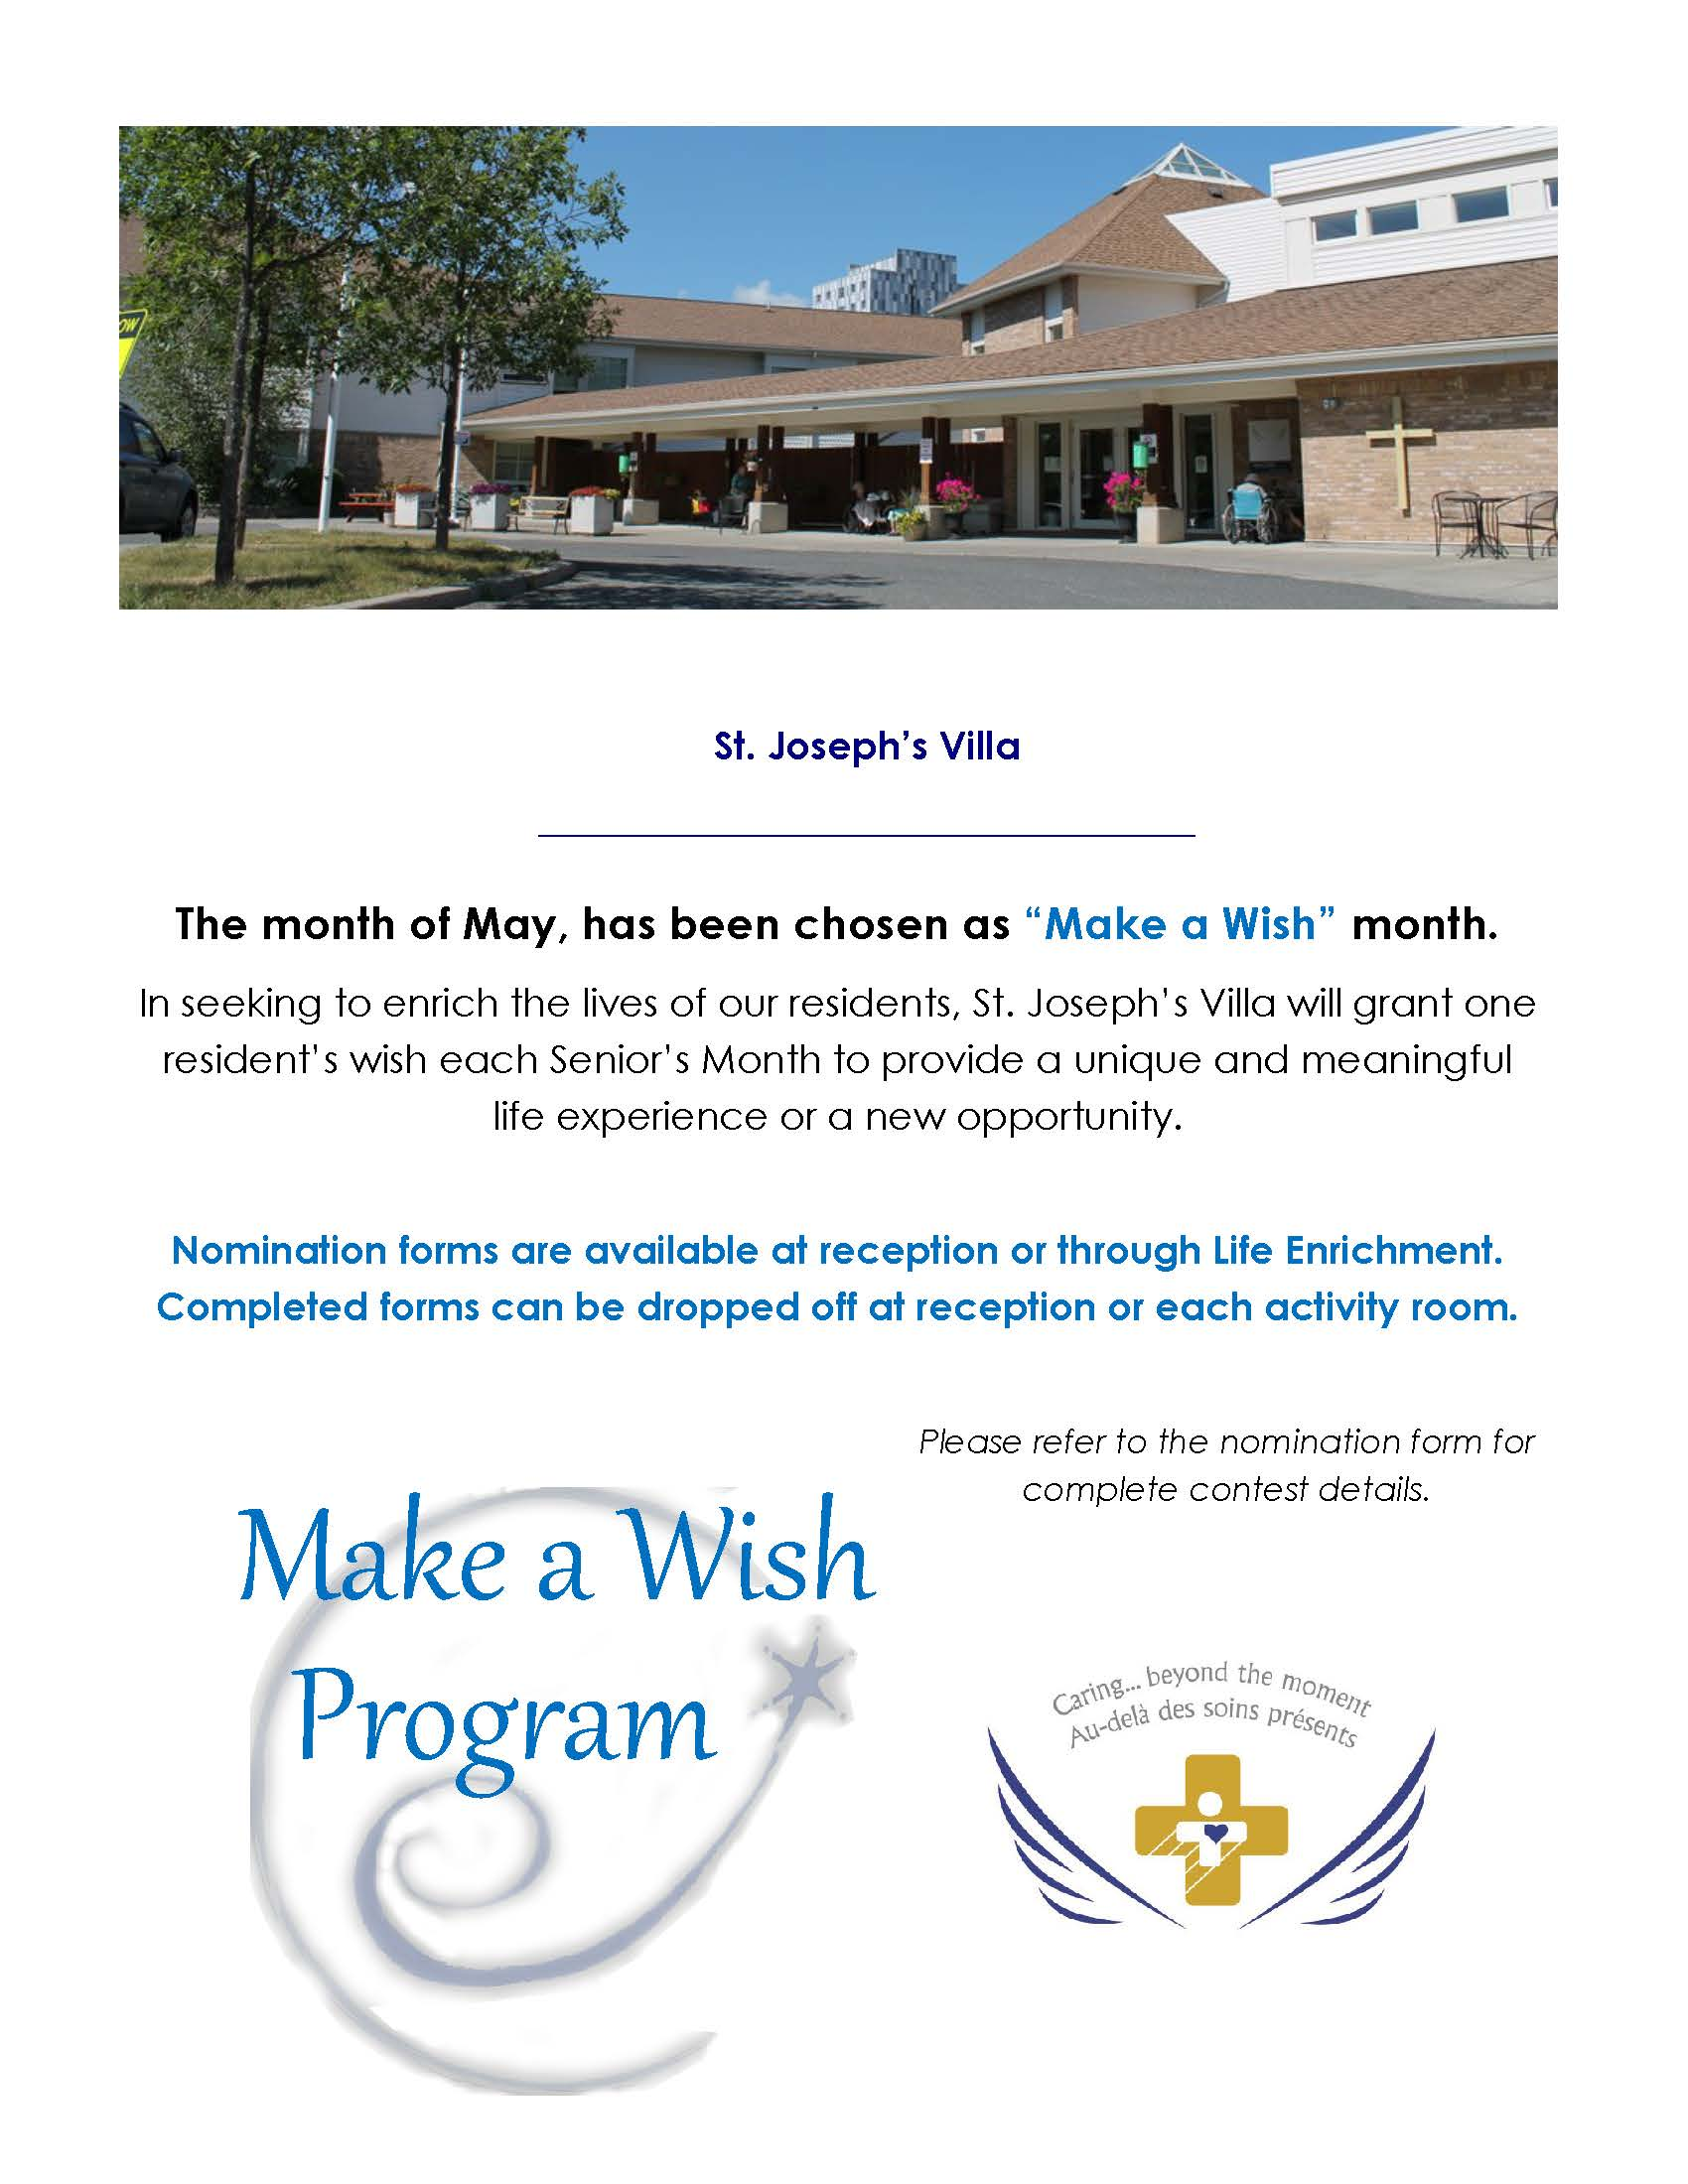 SJV Make-A-Wish Program